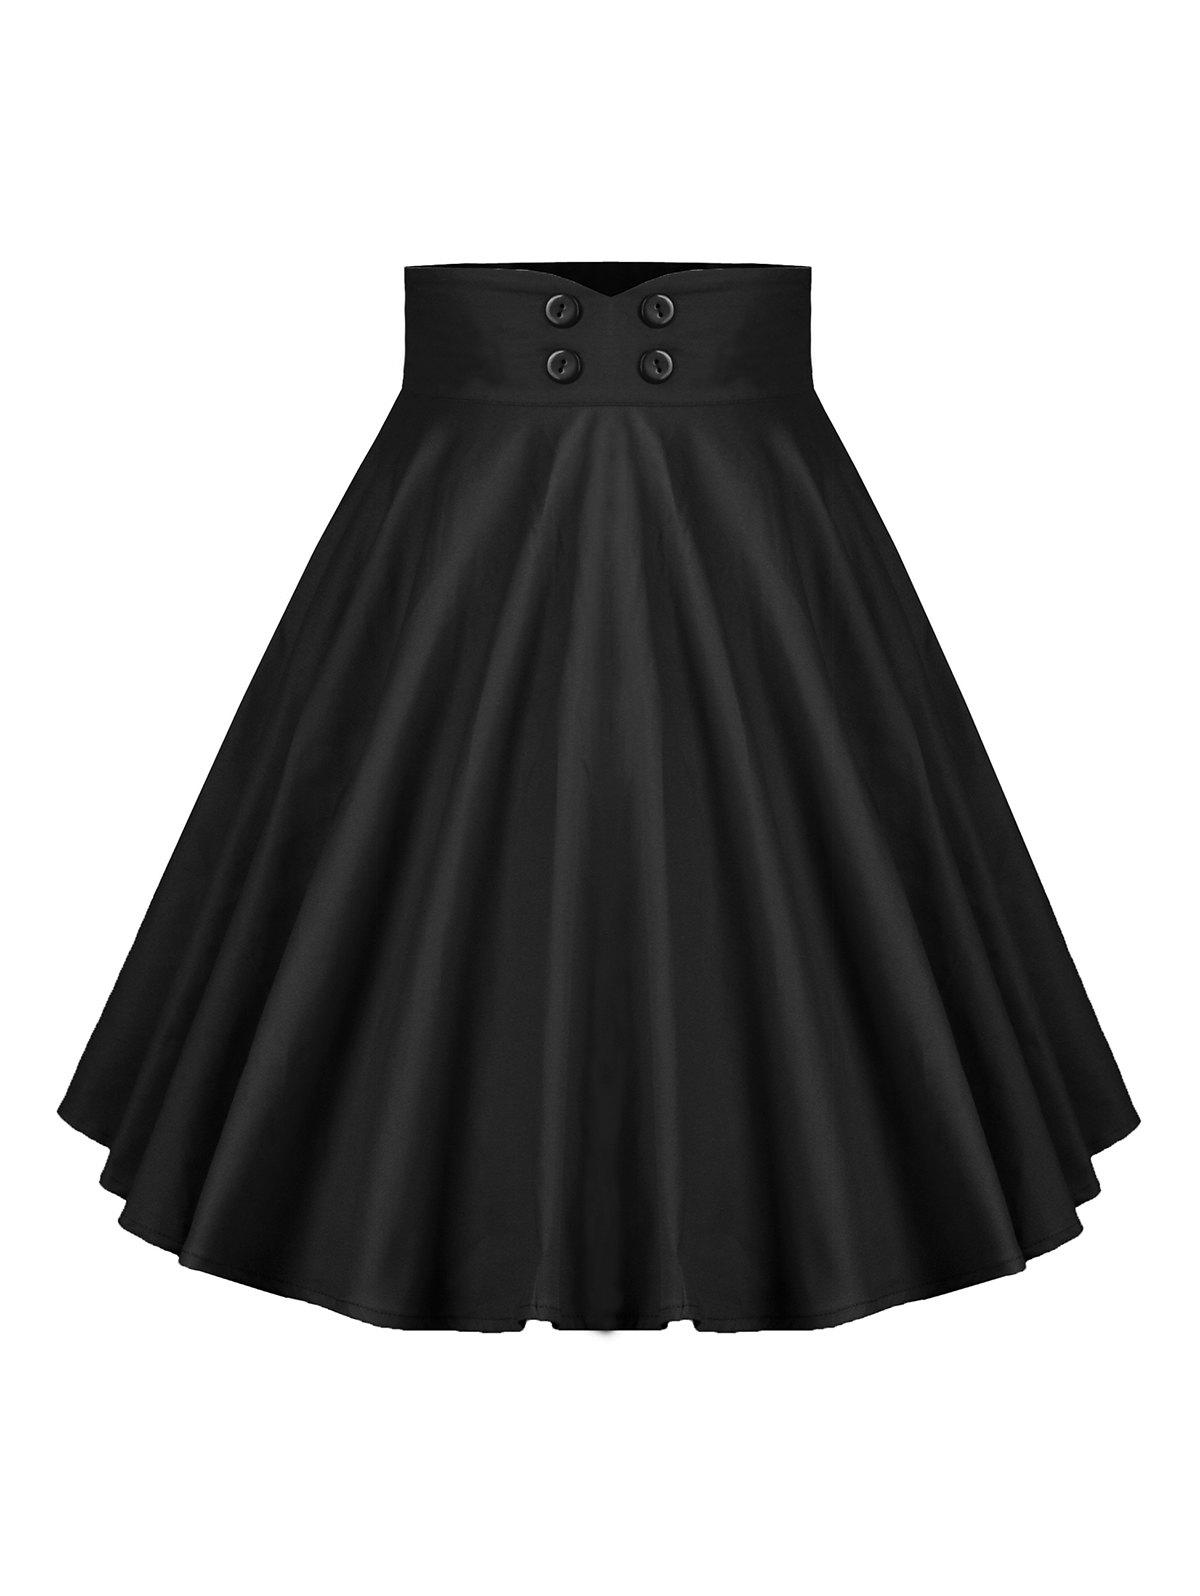 New Buttoned A Line Pleated Skirt